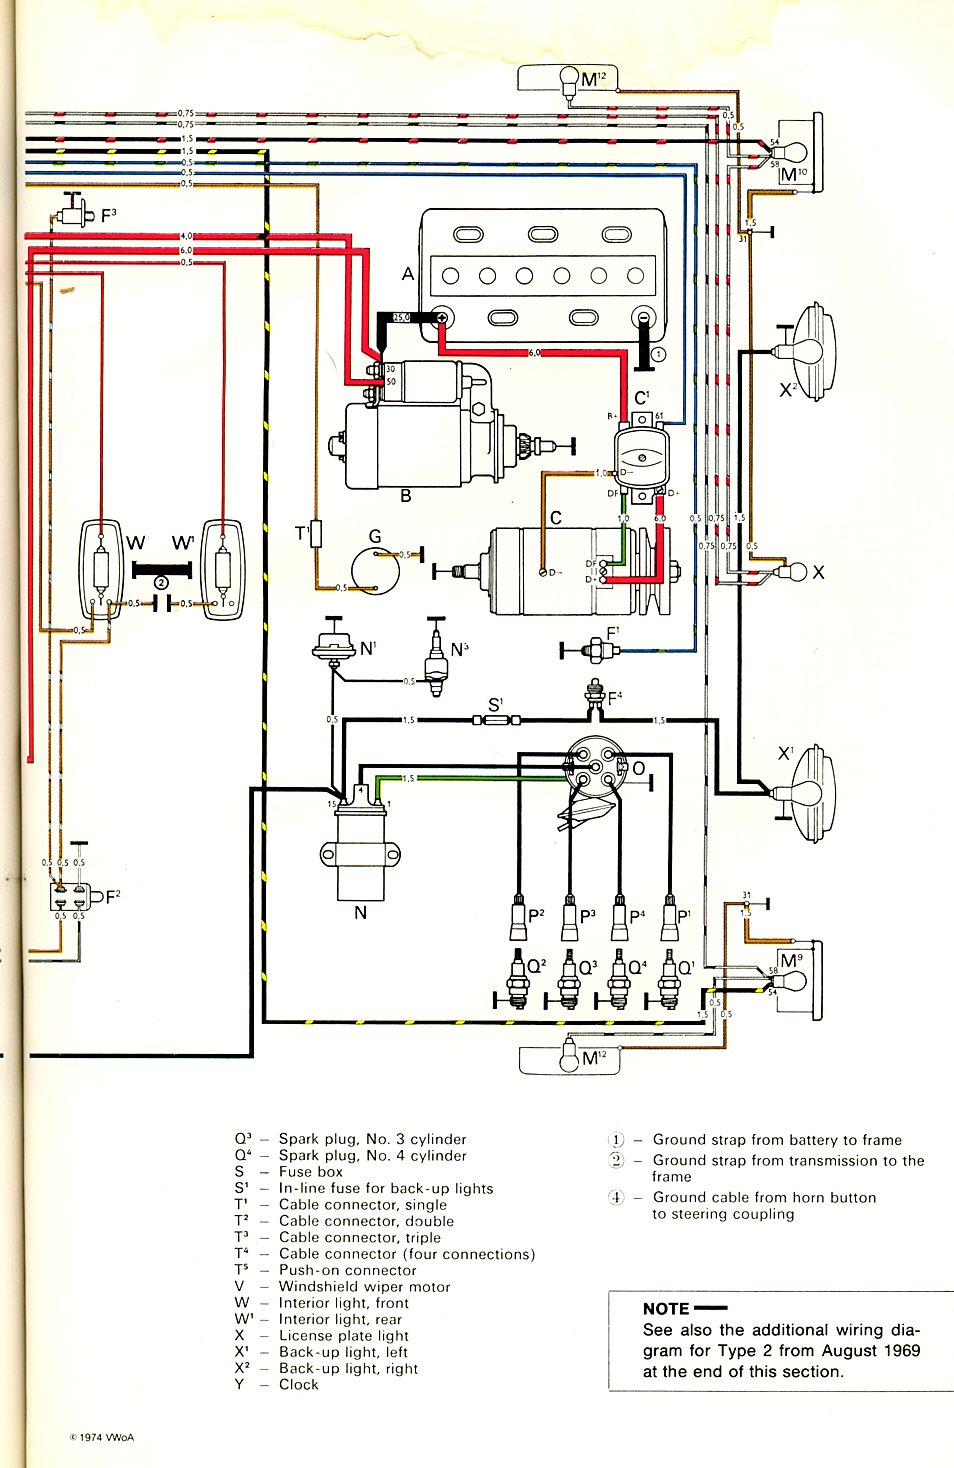 1970 vw wiring digram thesamba.com :: type 2 wiring diagrams #5